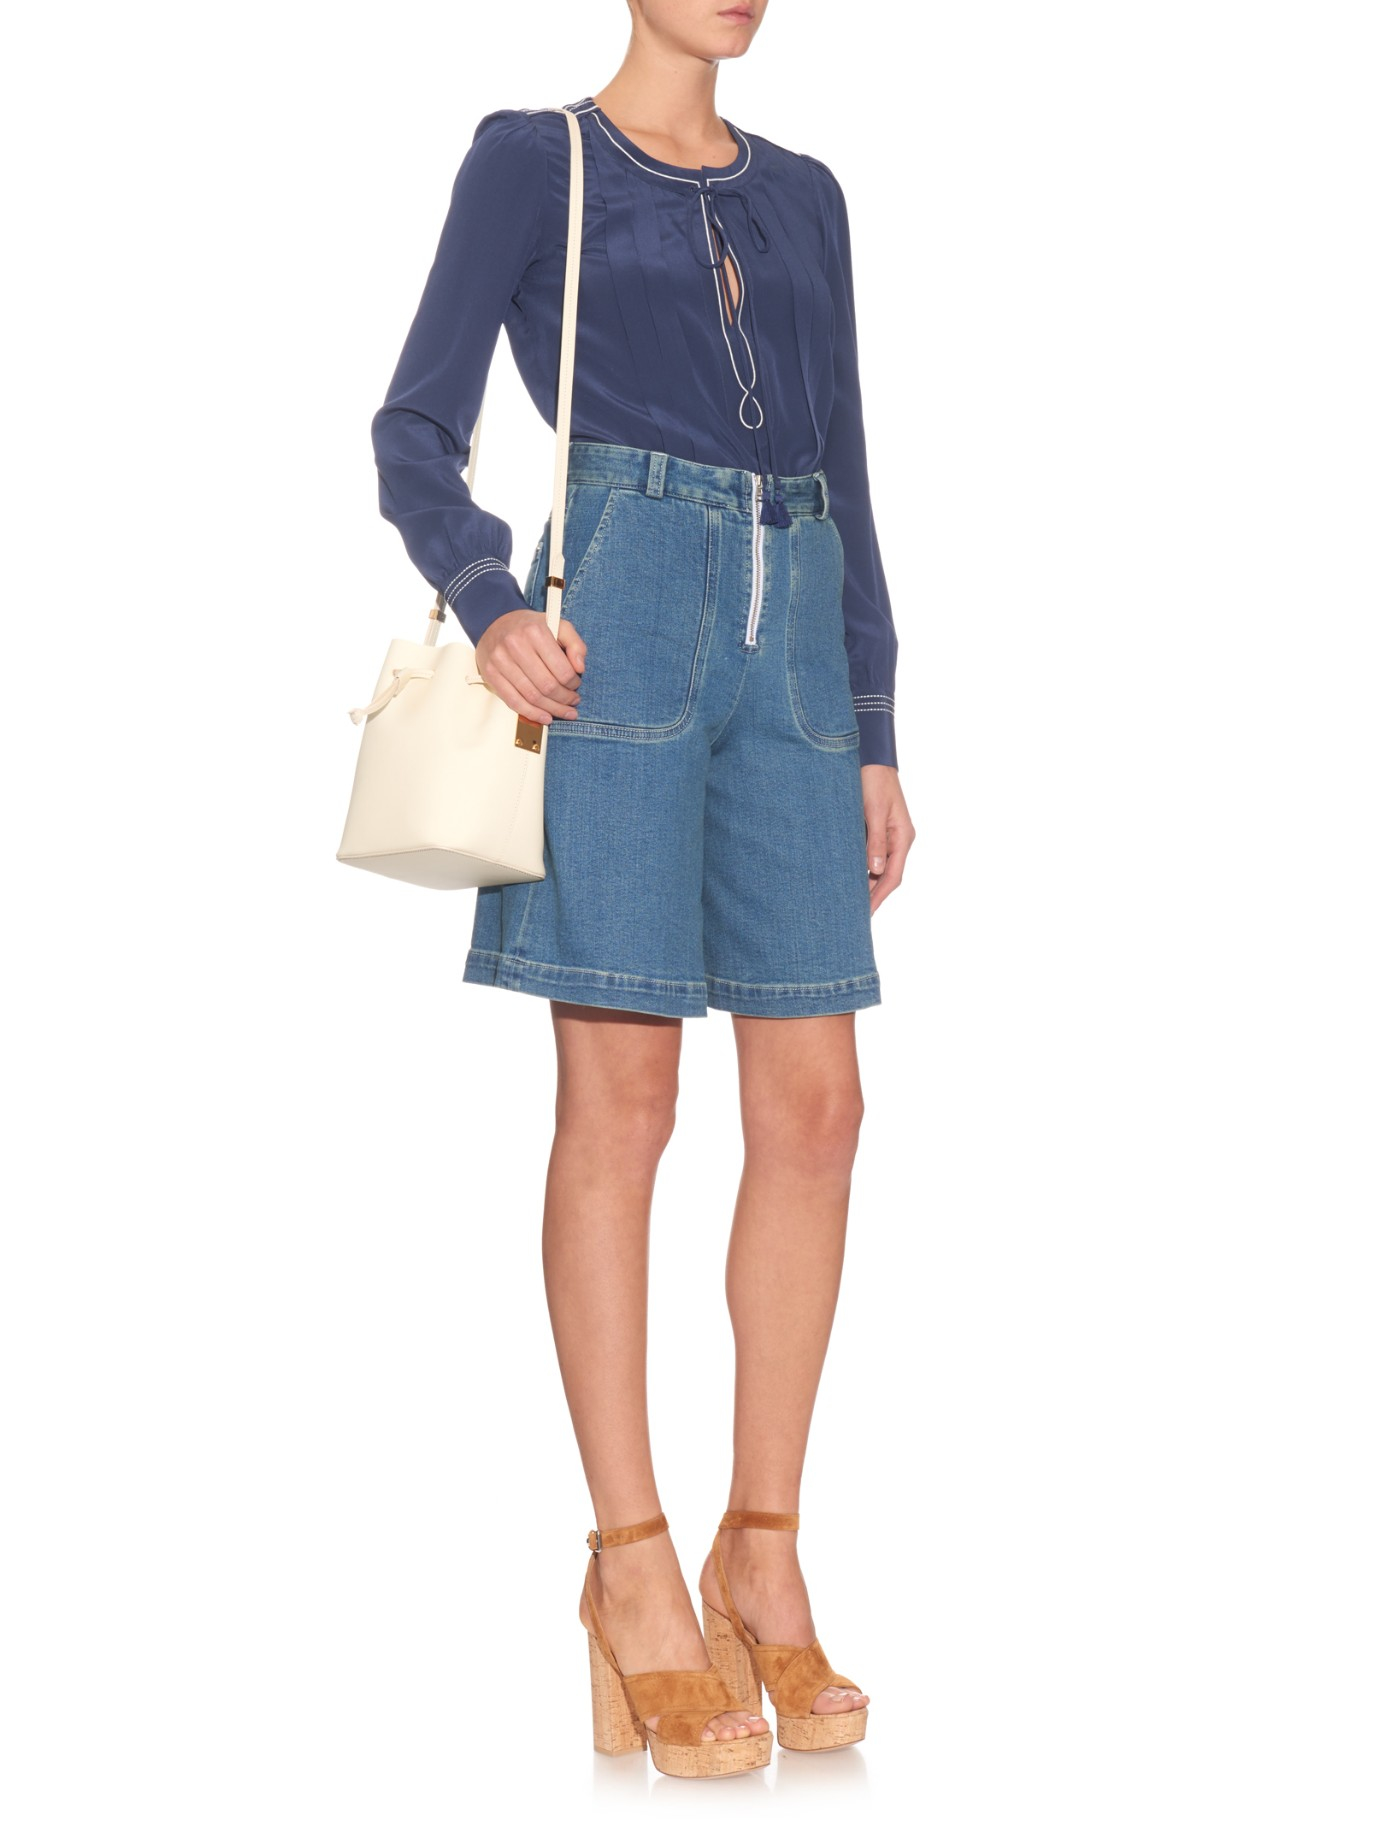 See by chloé Wide-leg Denim Shorts in Blue | Lyst